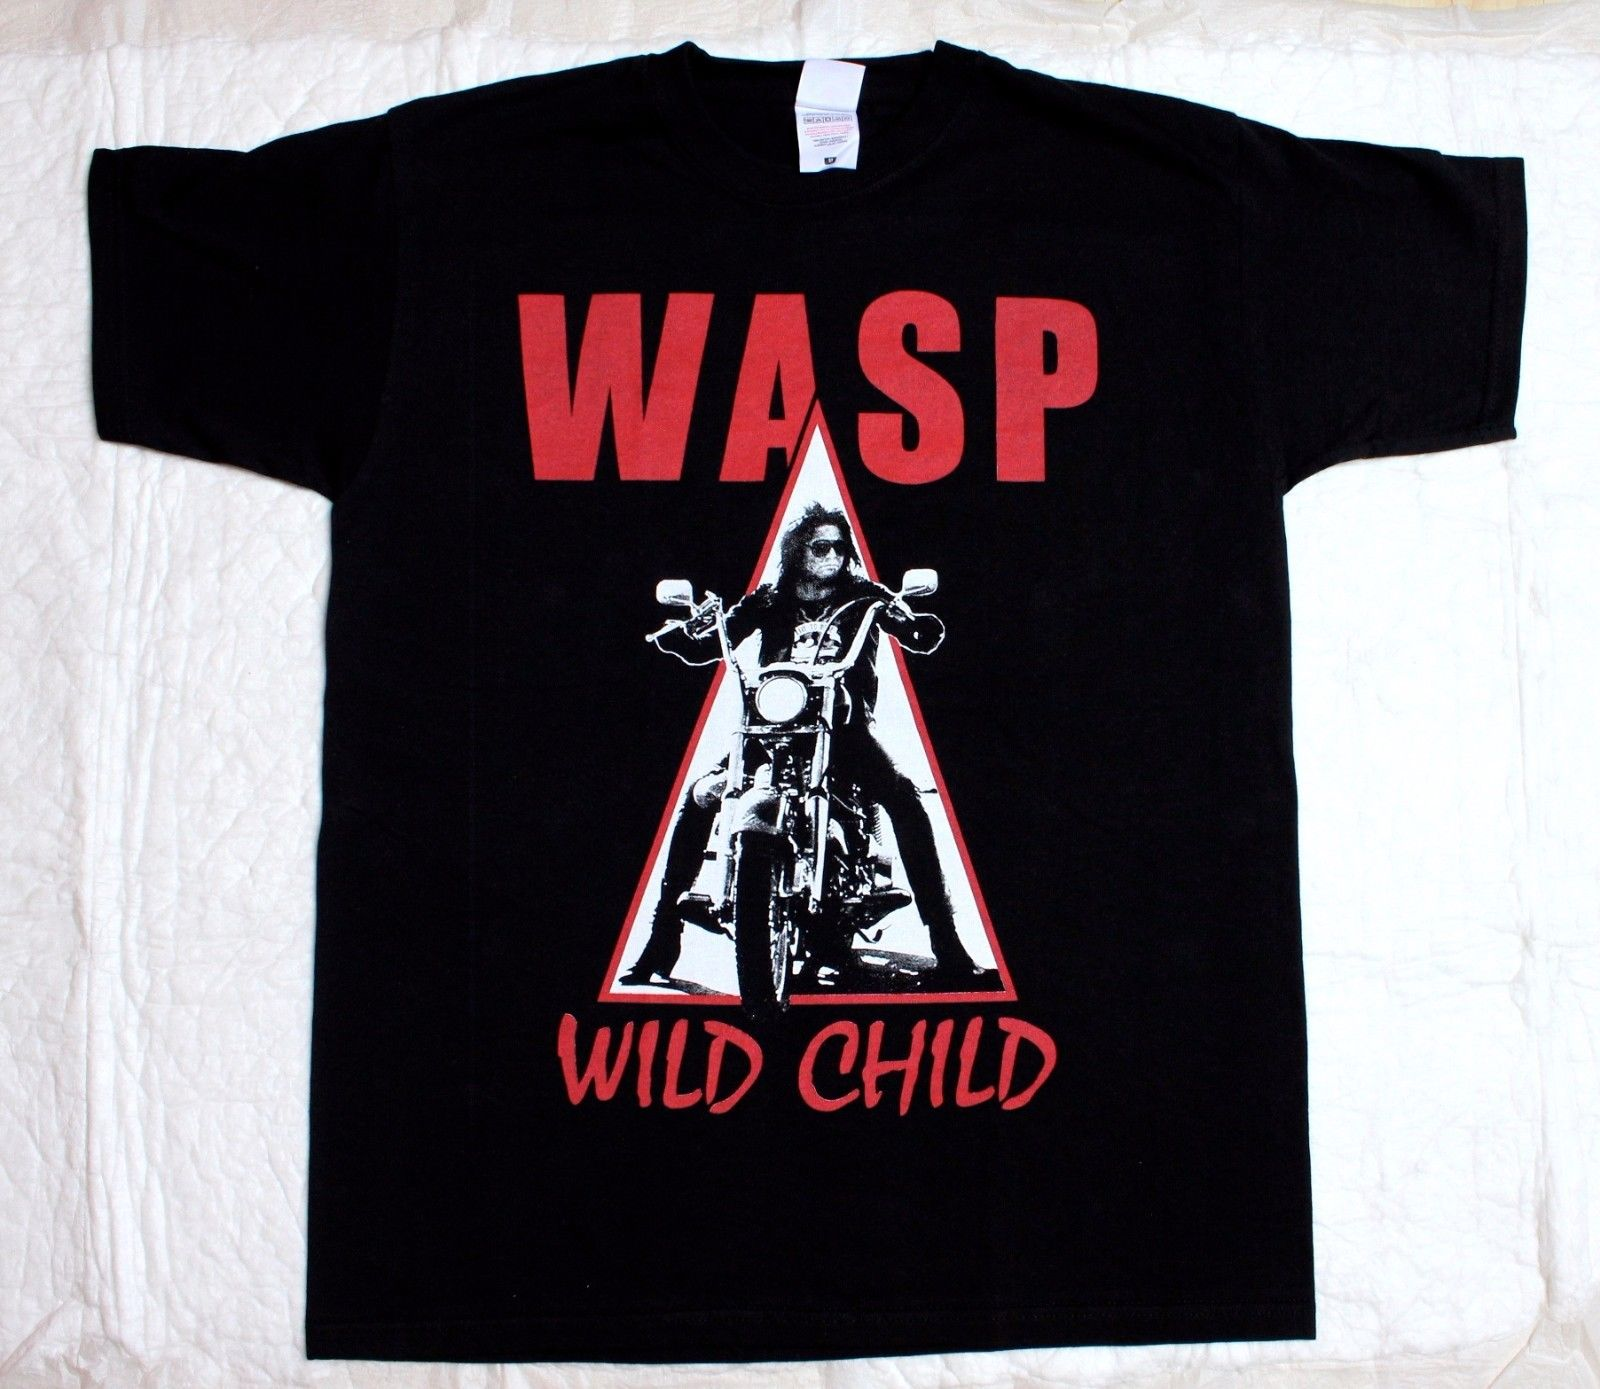 W.A.S.P. Wild Child85 Heavy Metal Band Wasp Twisted Sister New Black T Shirt